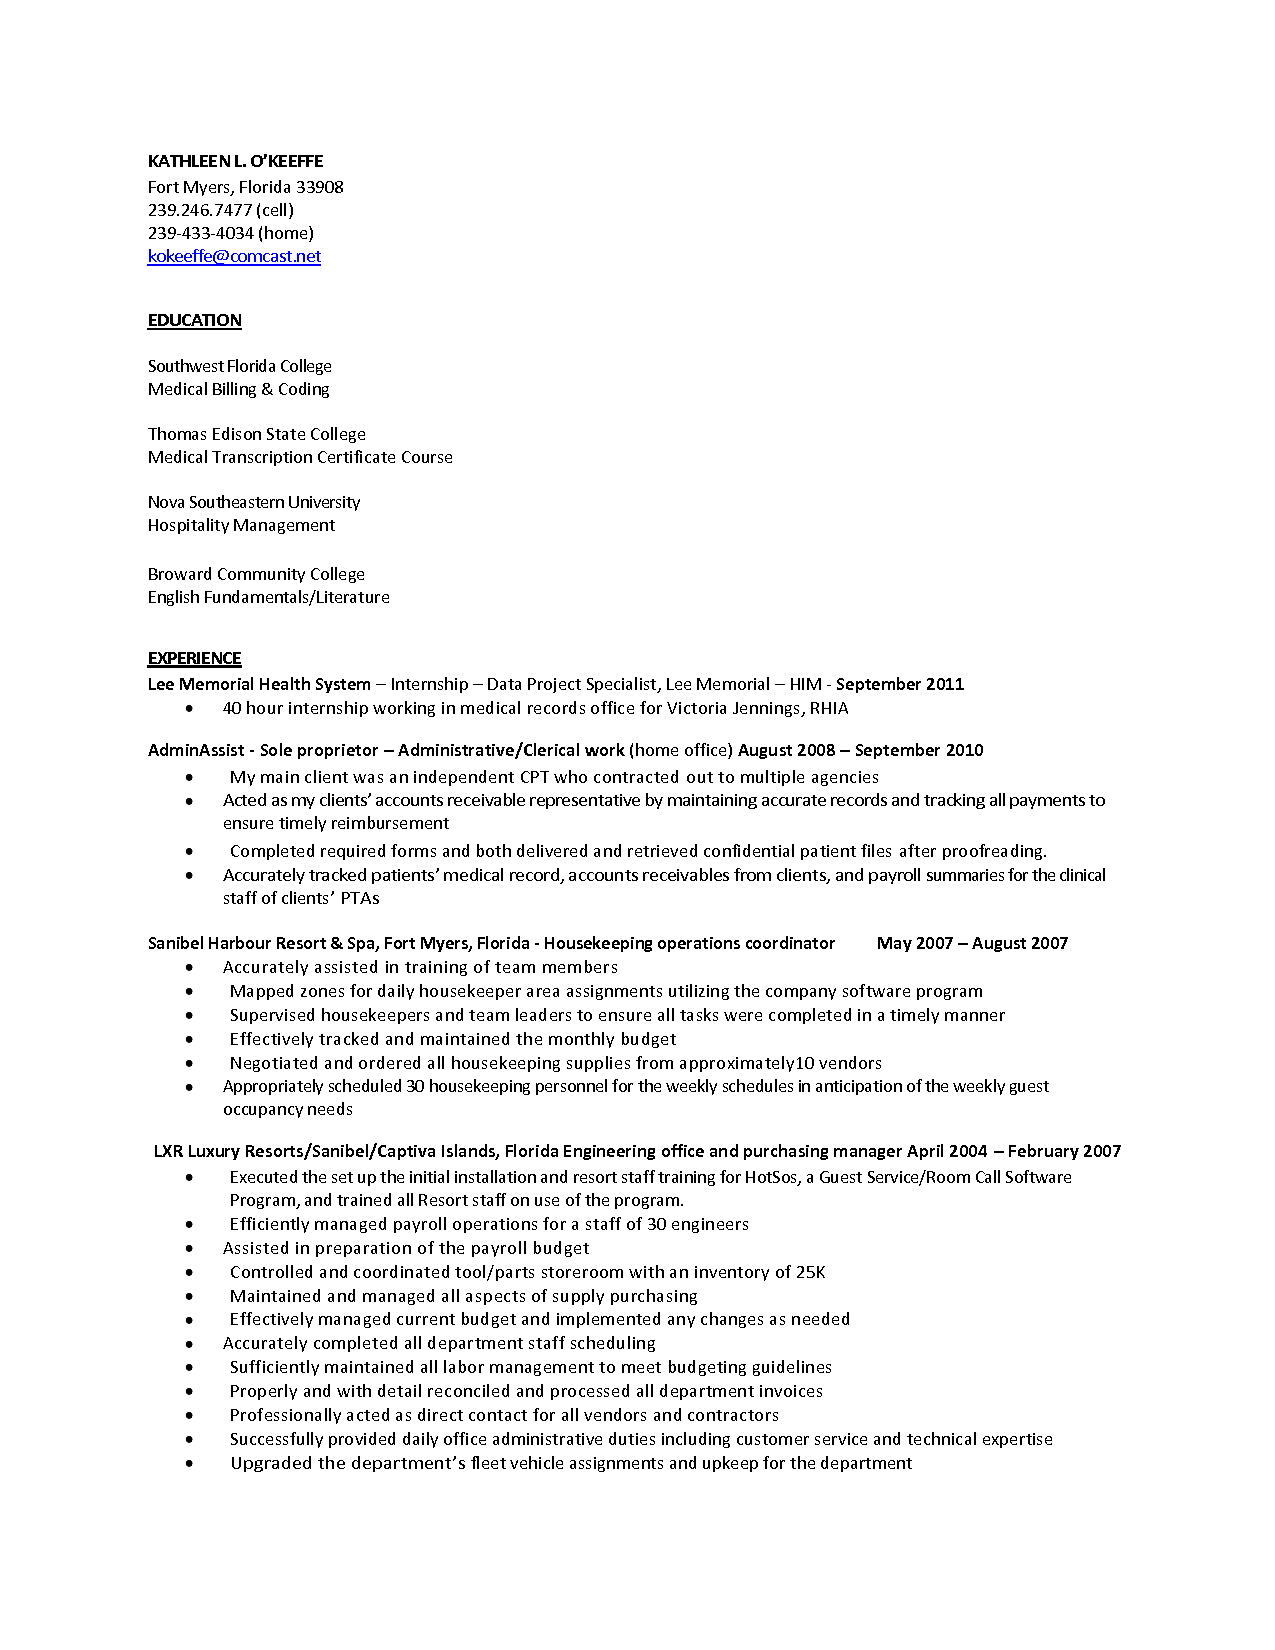 Example Of Medical Billing and Coding and Resume Templates Medical Records Specialist Resume Medical